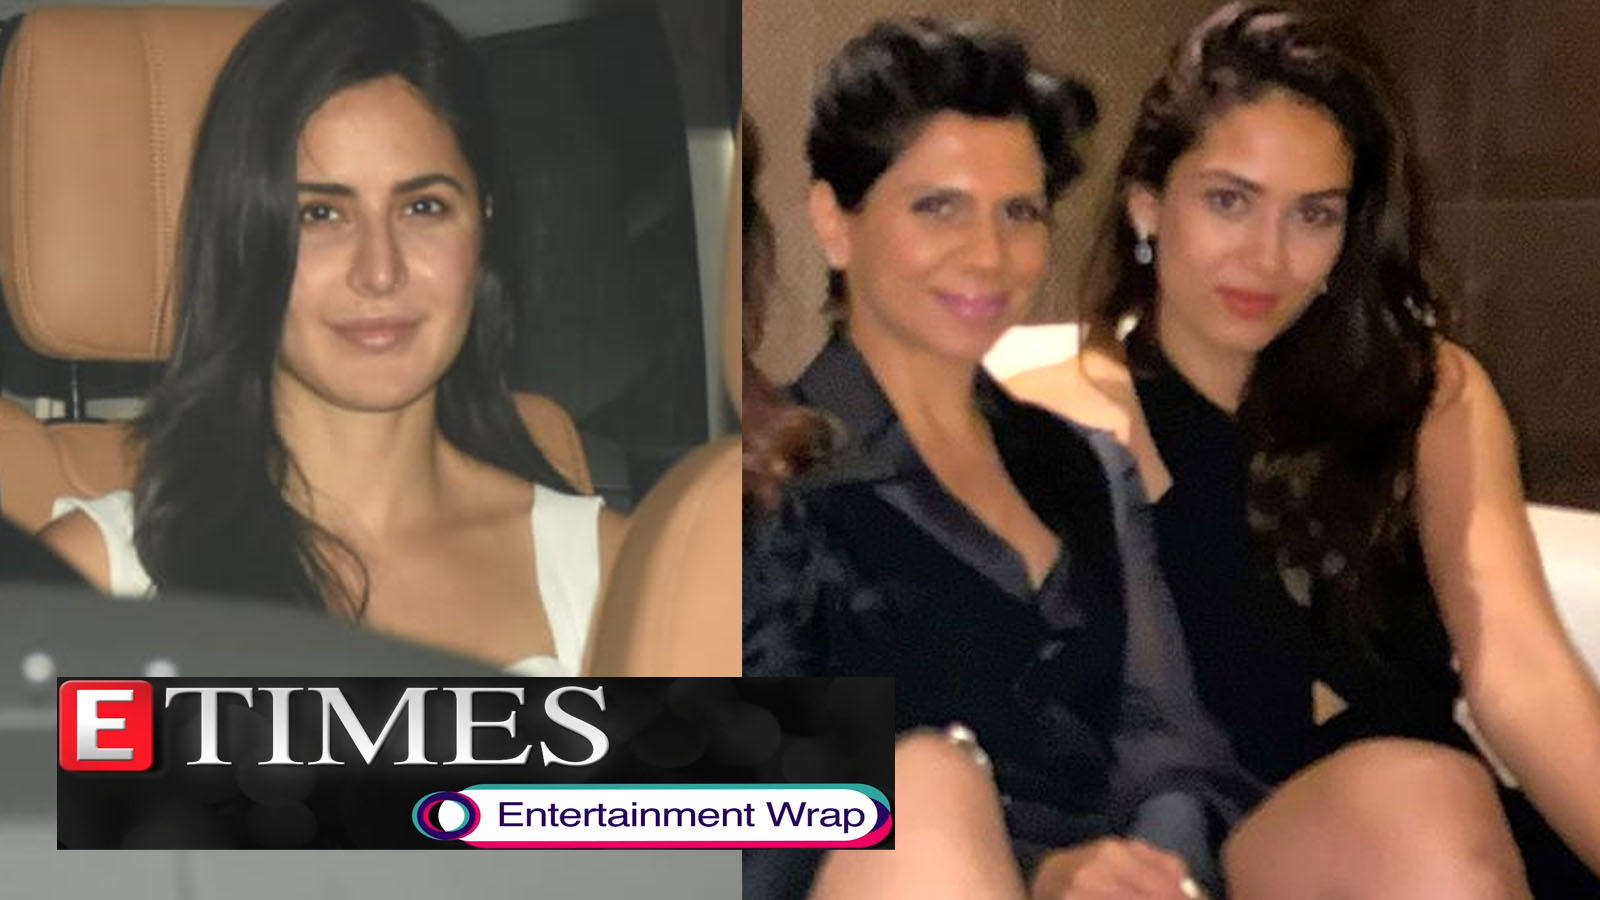 katrina-kaif-and-vicky-kaushal-spotted-together-outside-friends-house-mira-rajput-catches-up-with-her-girl-gang-as-hubby-shahid-kapoor-resumes-shoot-and-more